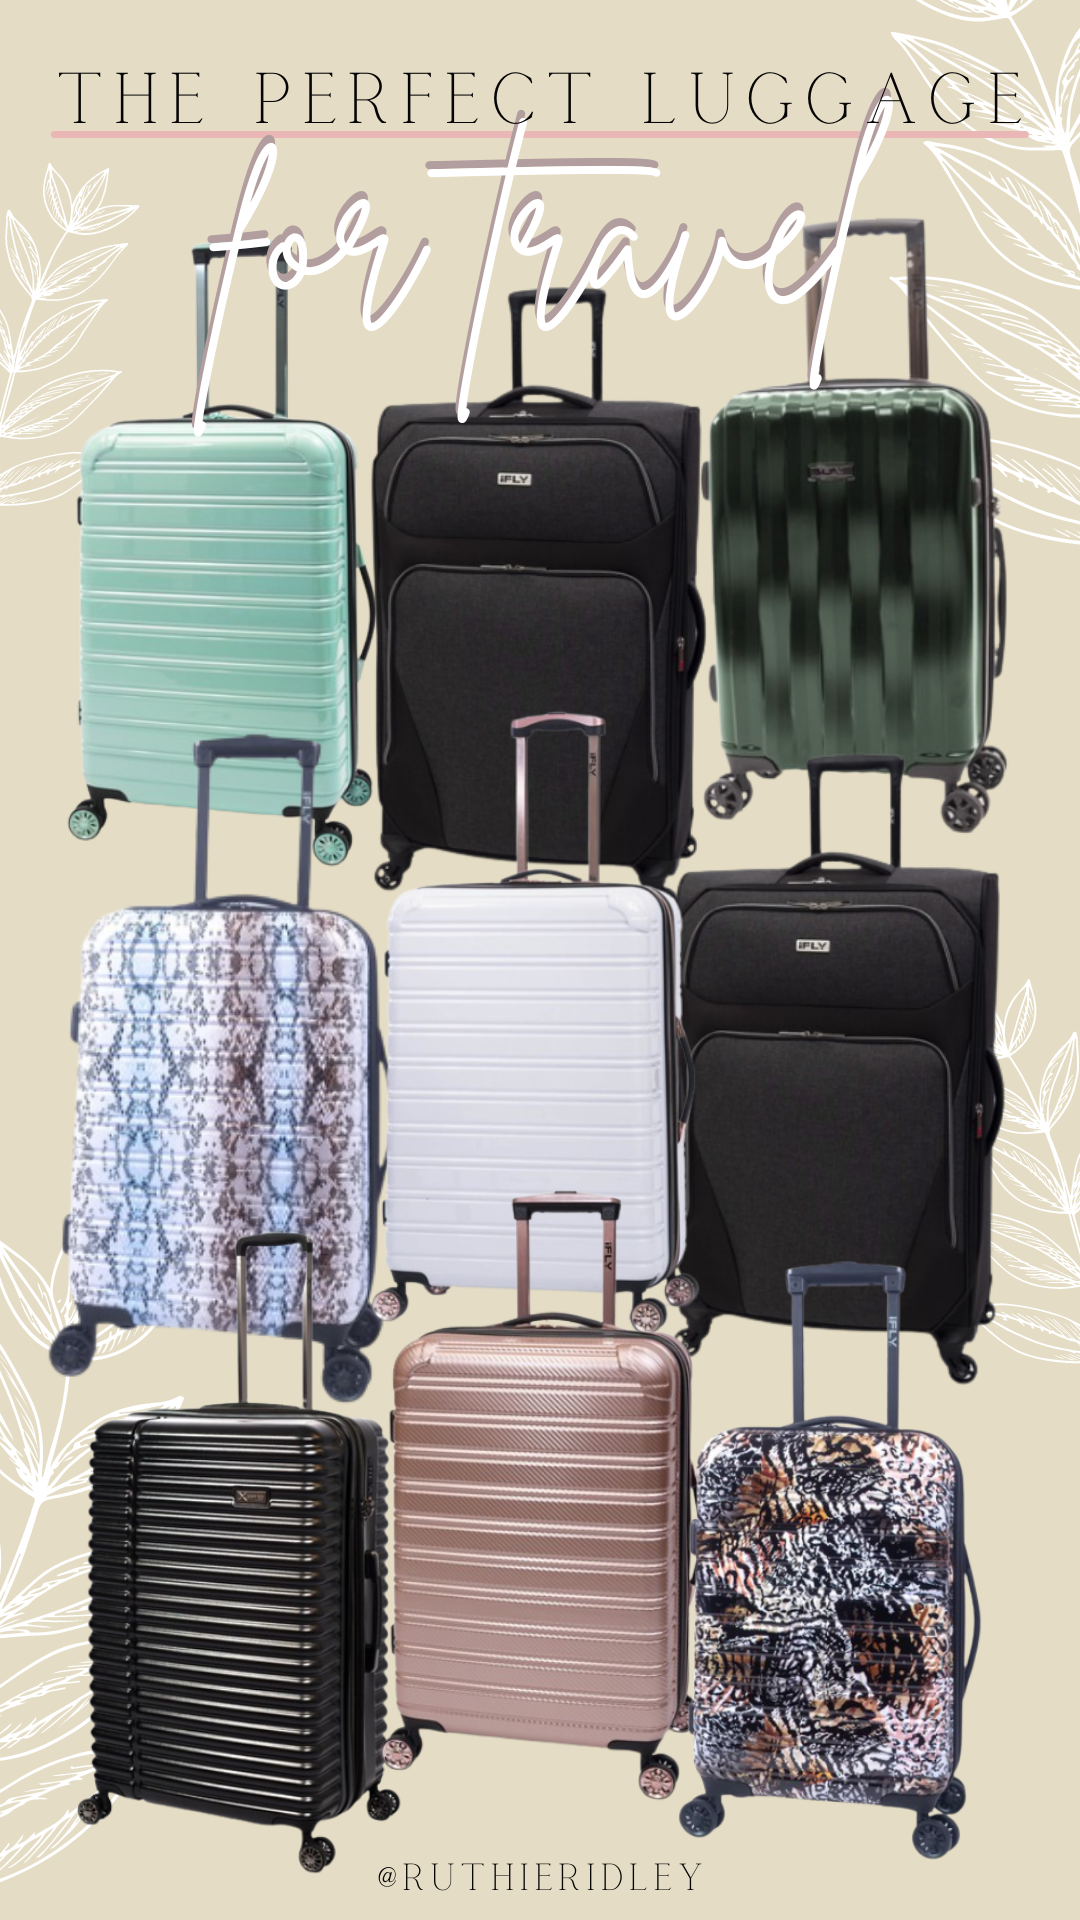 Ruthie Ridley Blog The Perfect Luggage For Travel: iFly